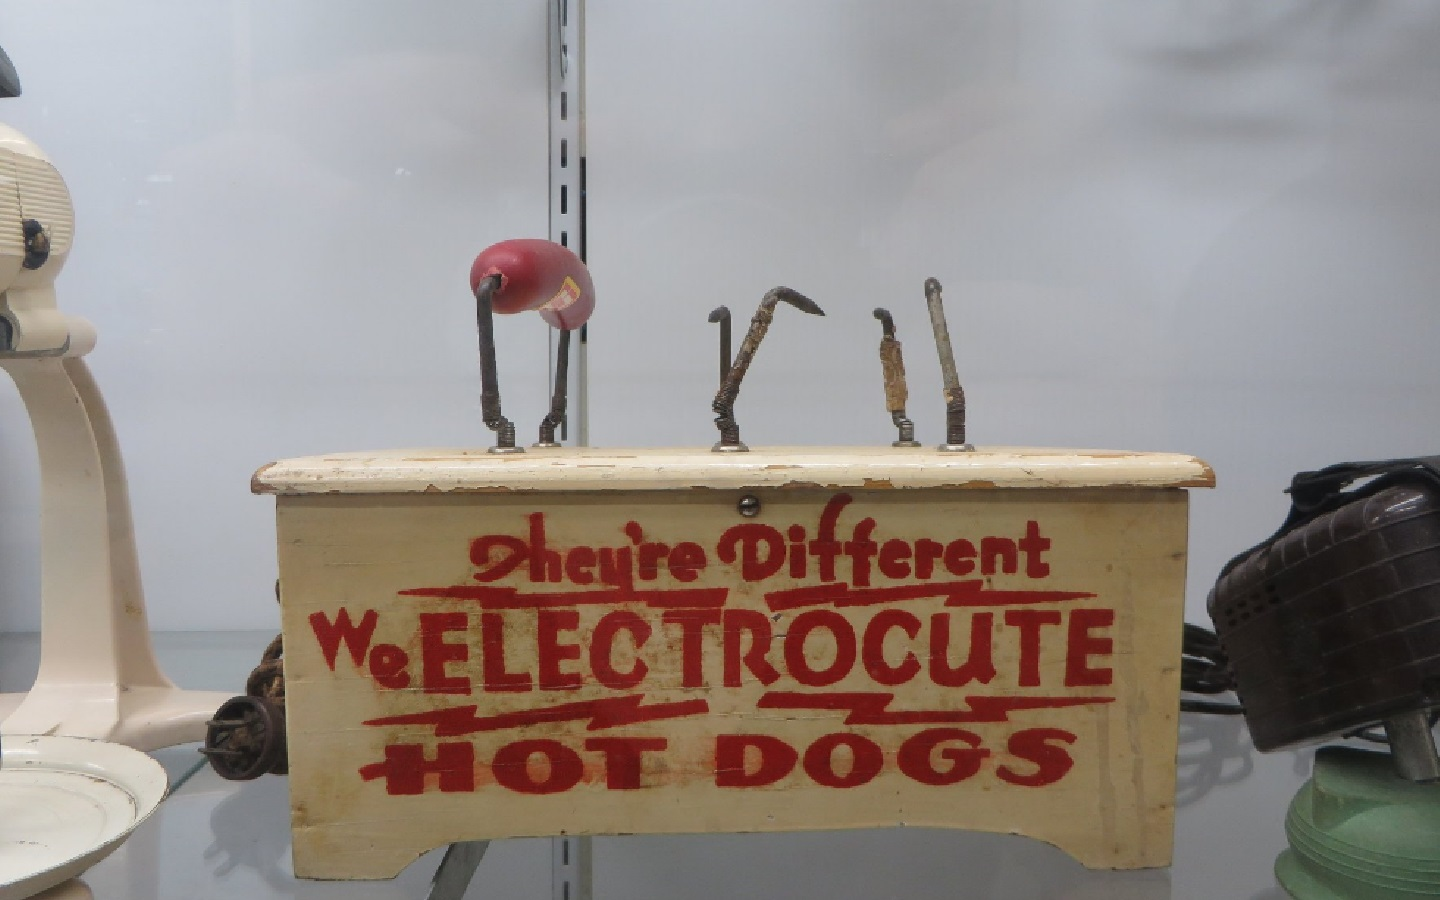 Electrocute Hotdogs